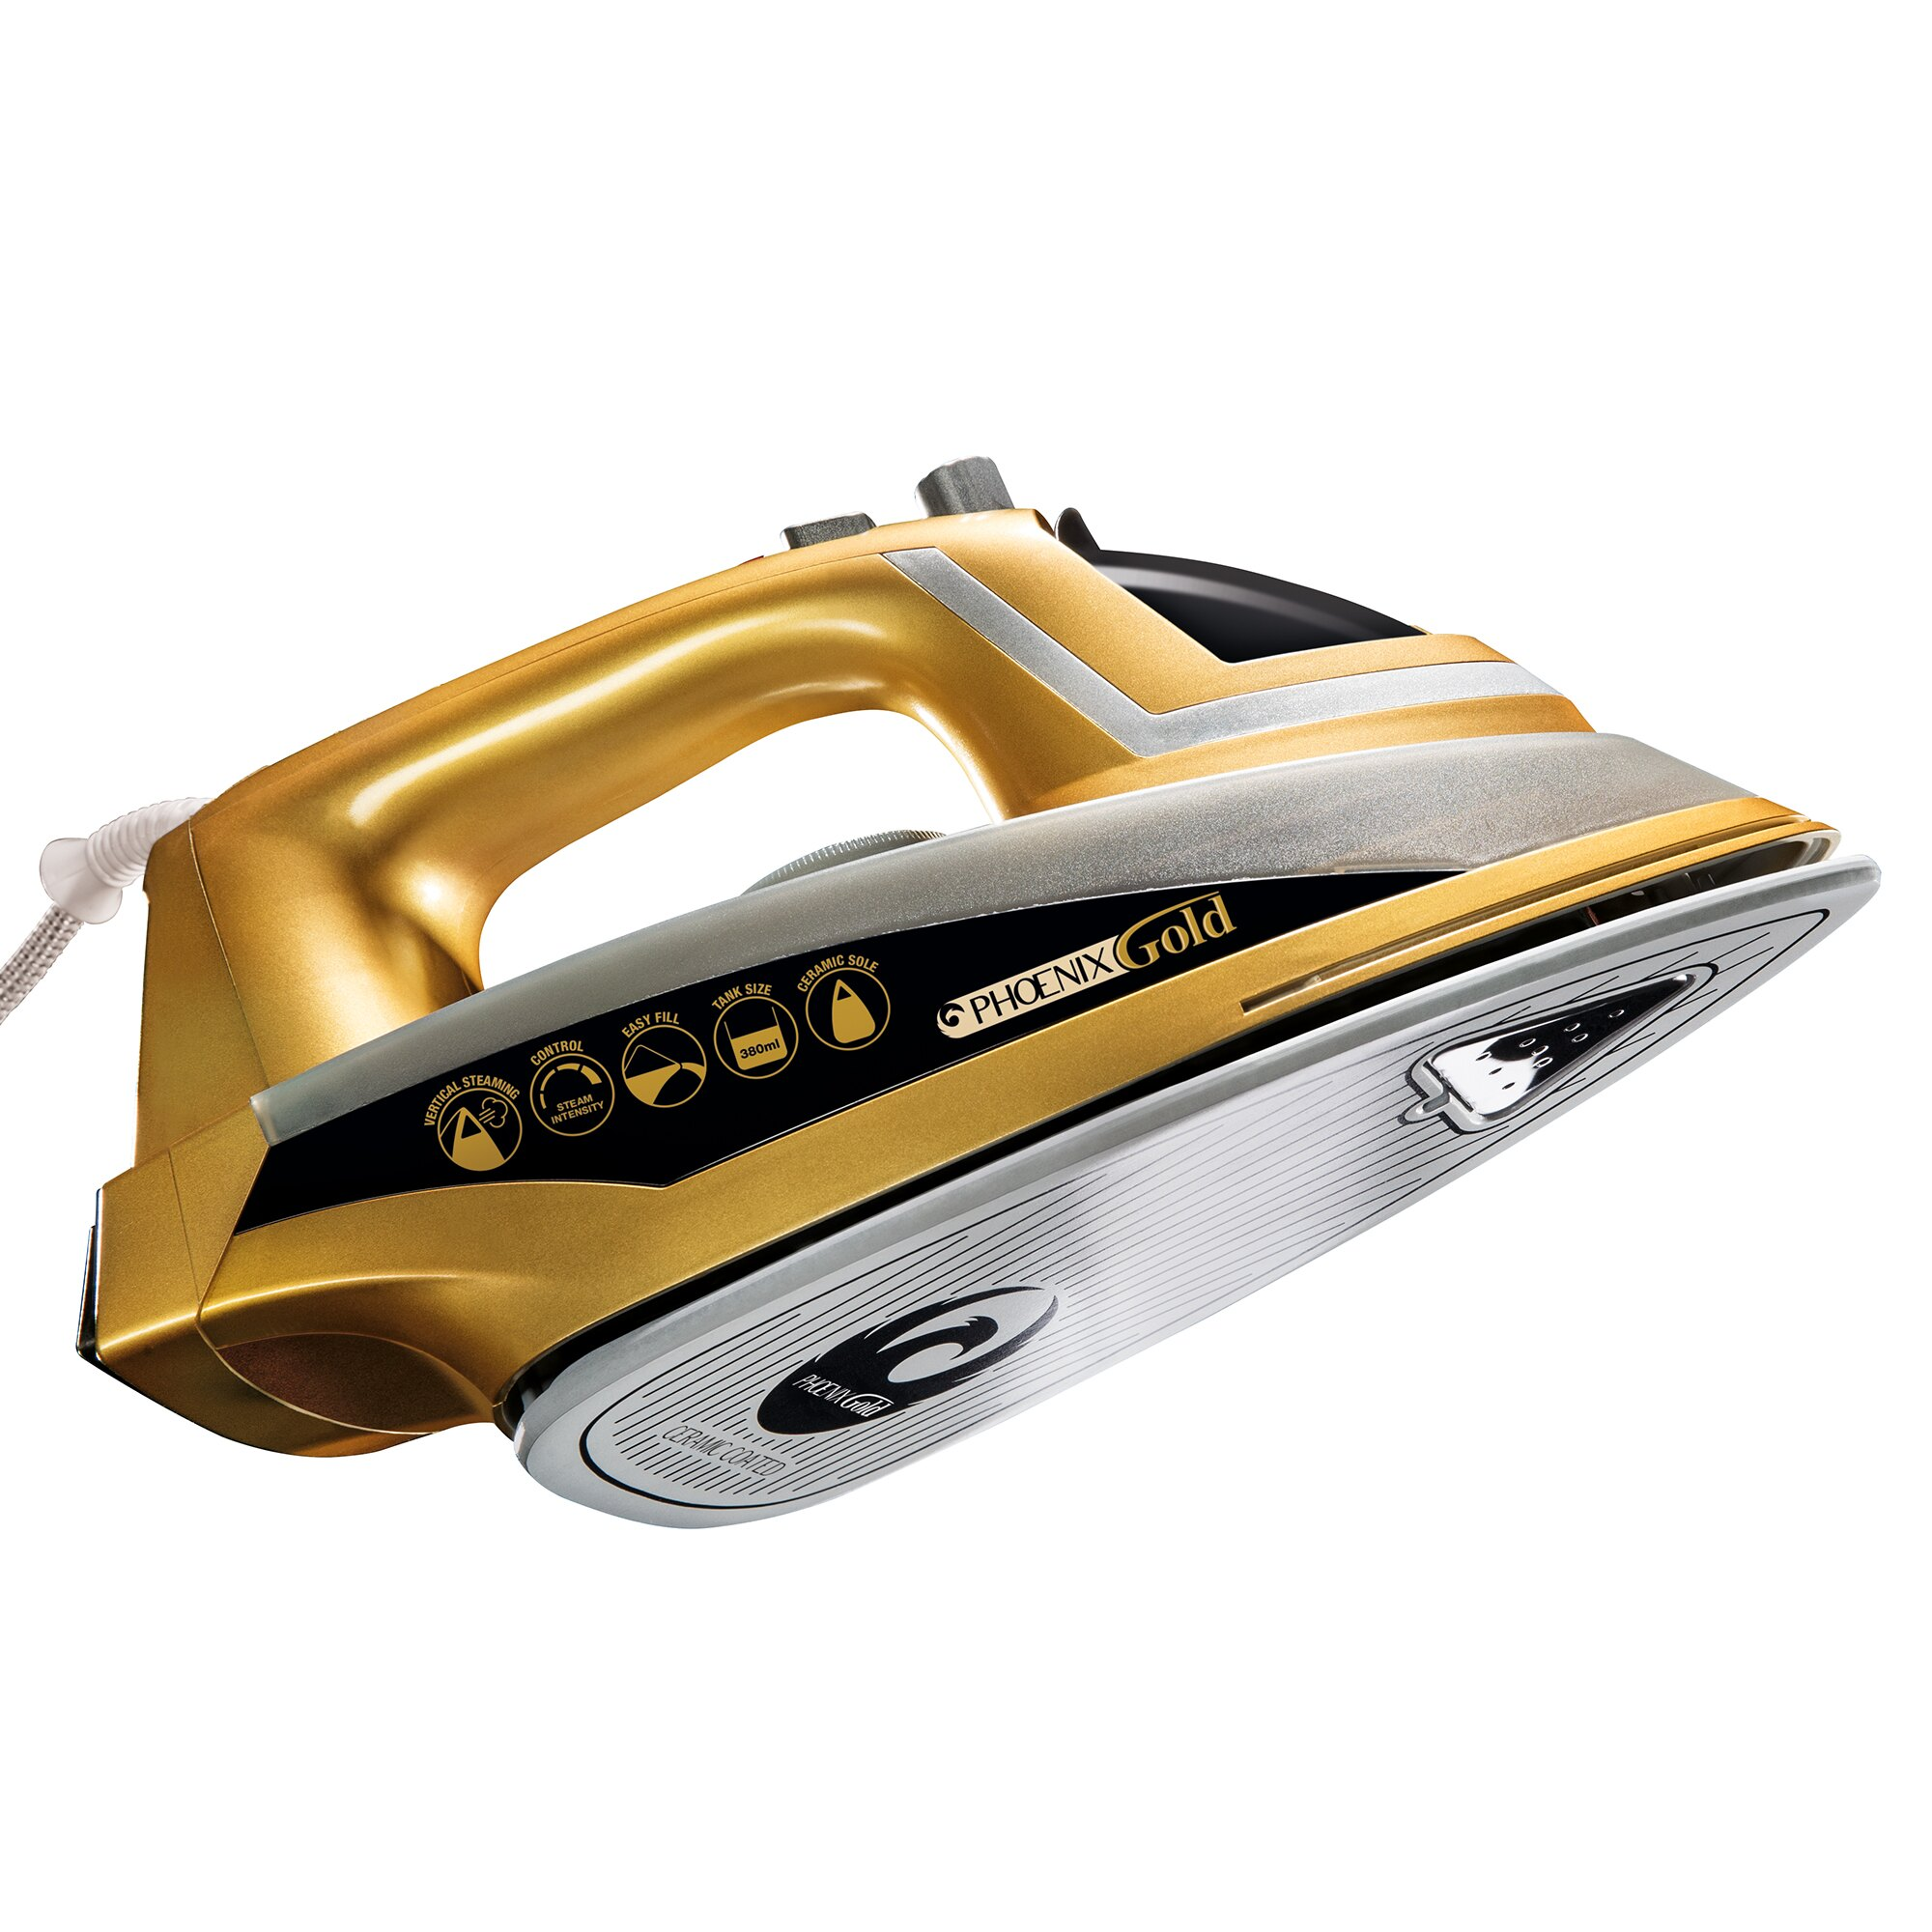 Jml Direct Rakuten Co Uk Shopping Phoenix Gold Iron